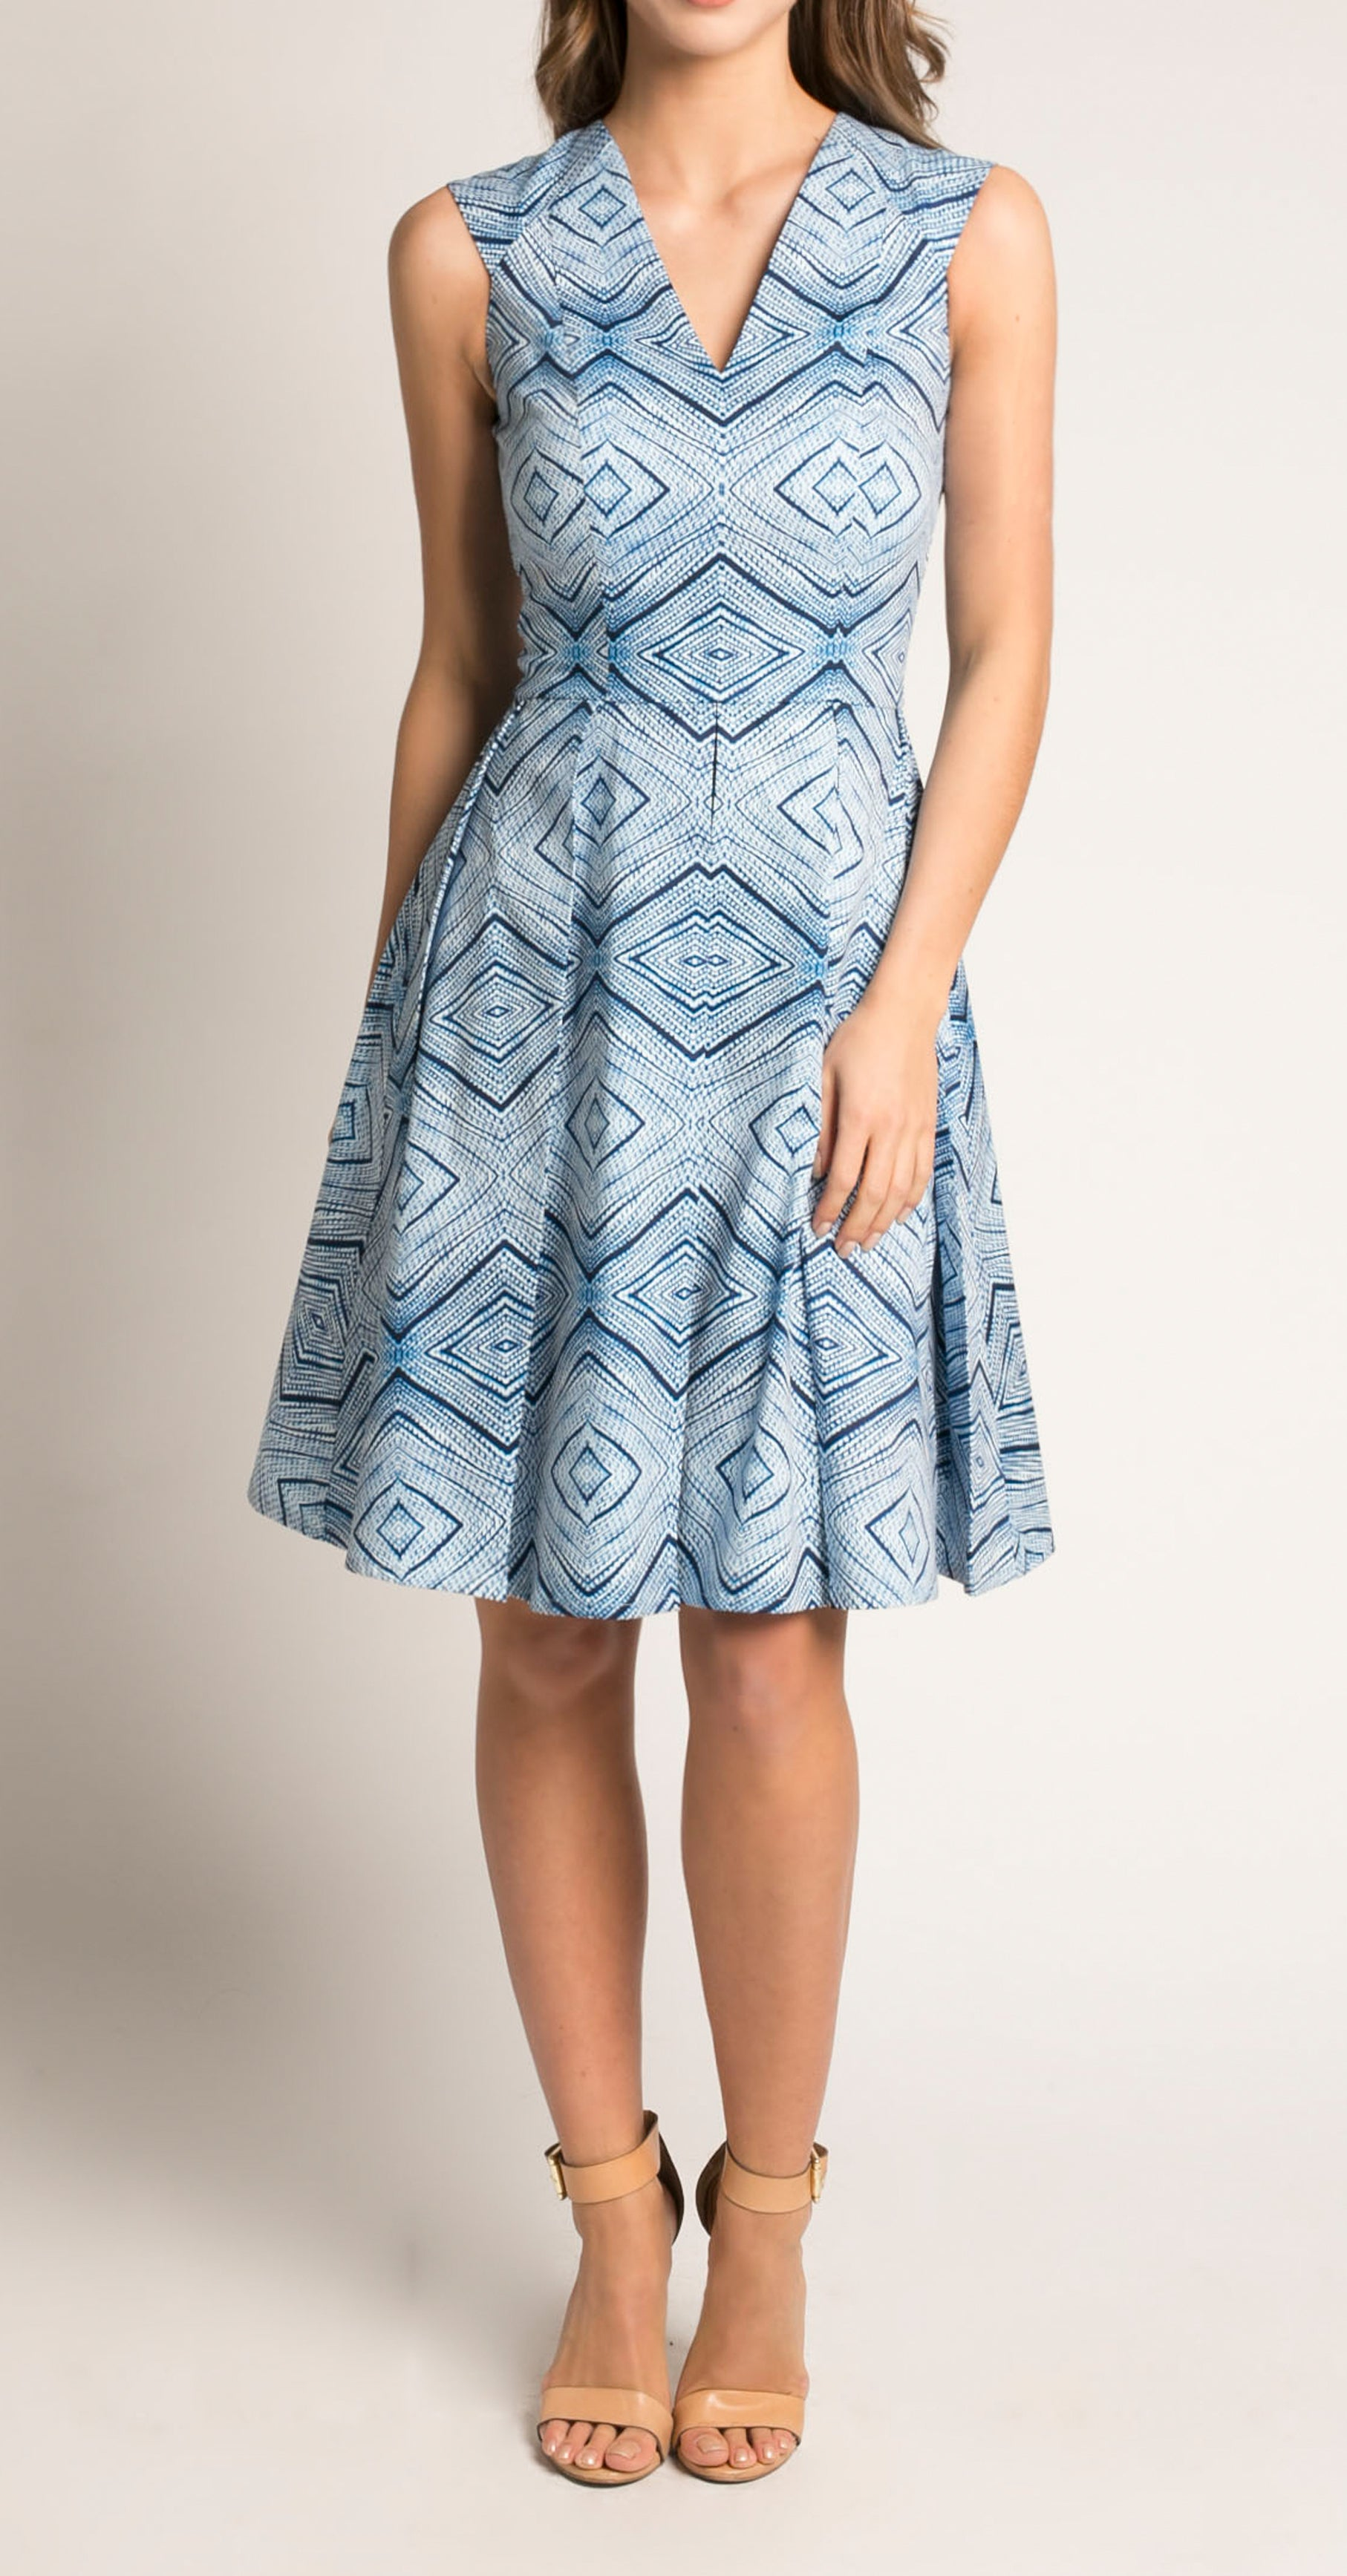 NANTES DRESS DENIM DIAMOND PRINT